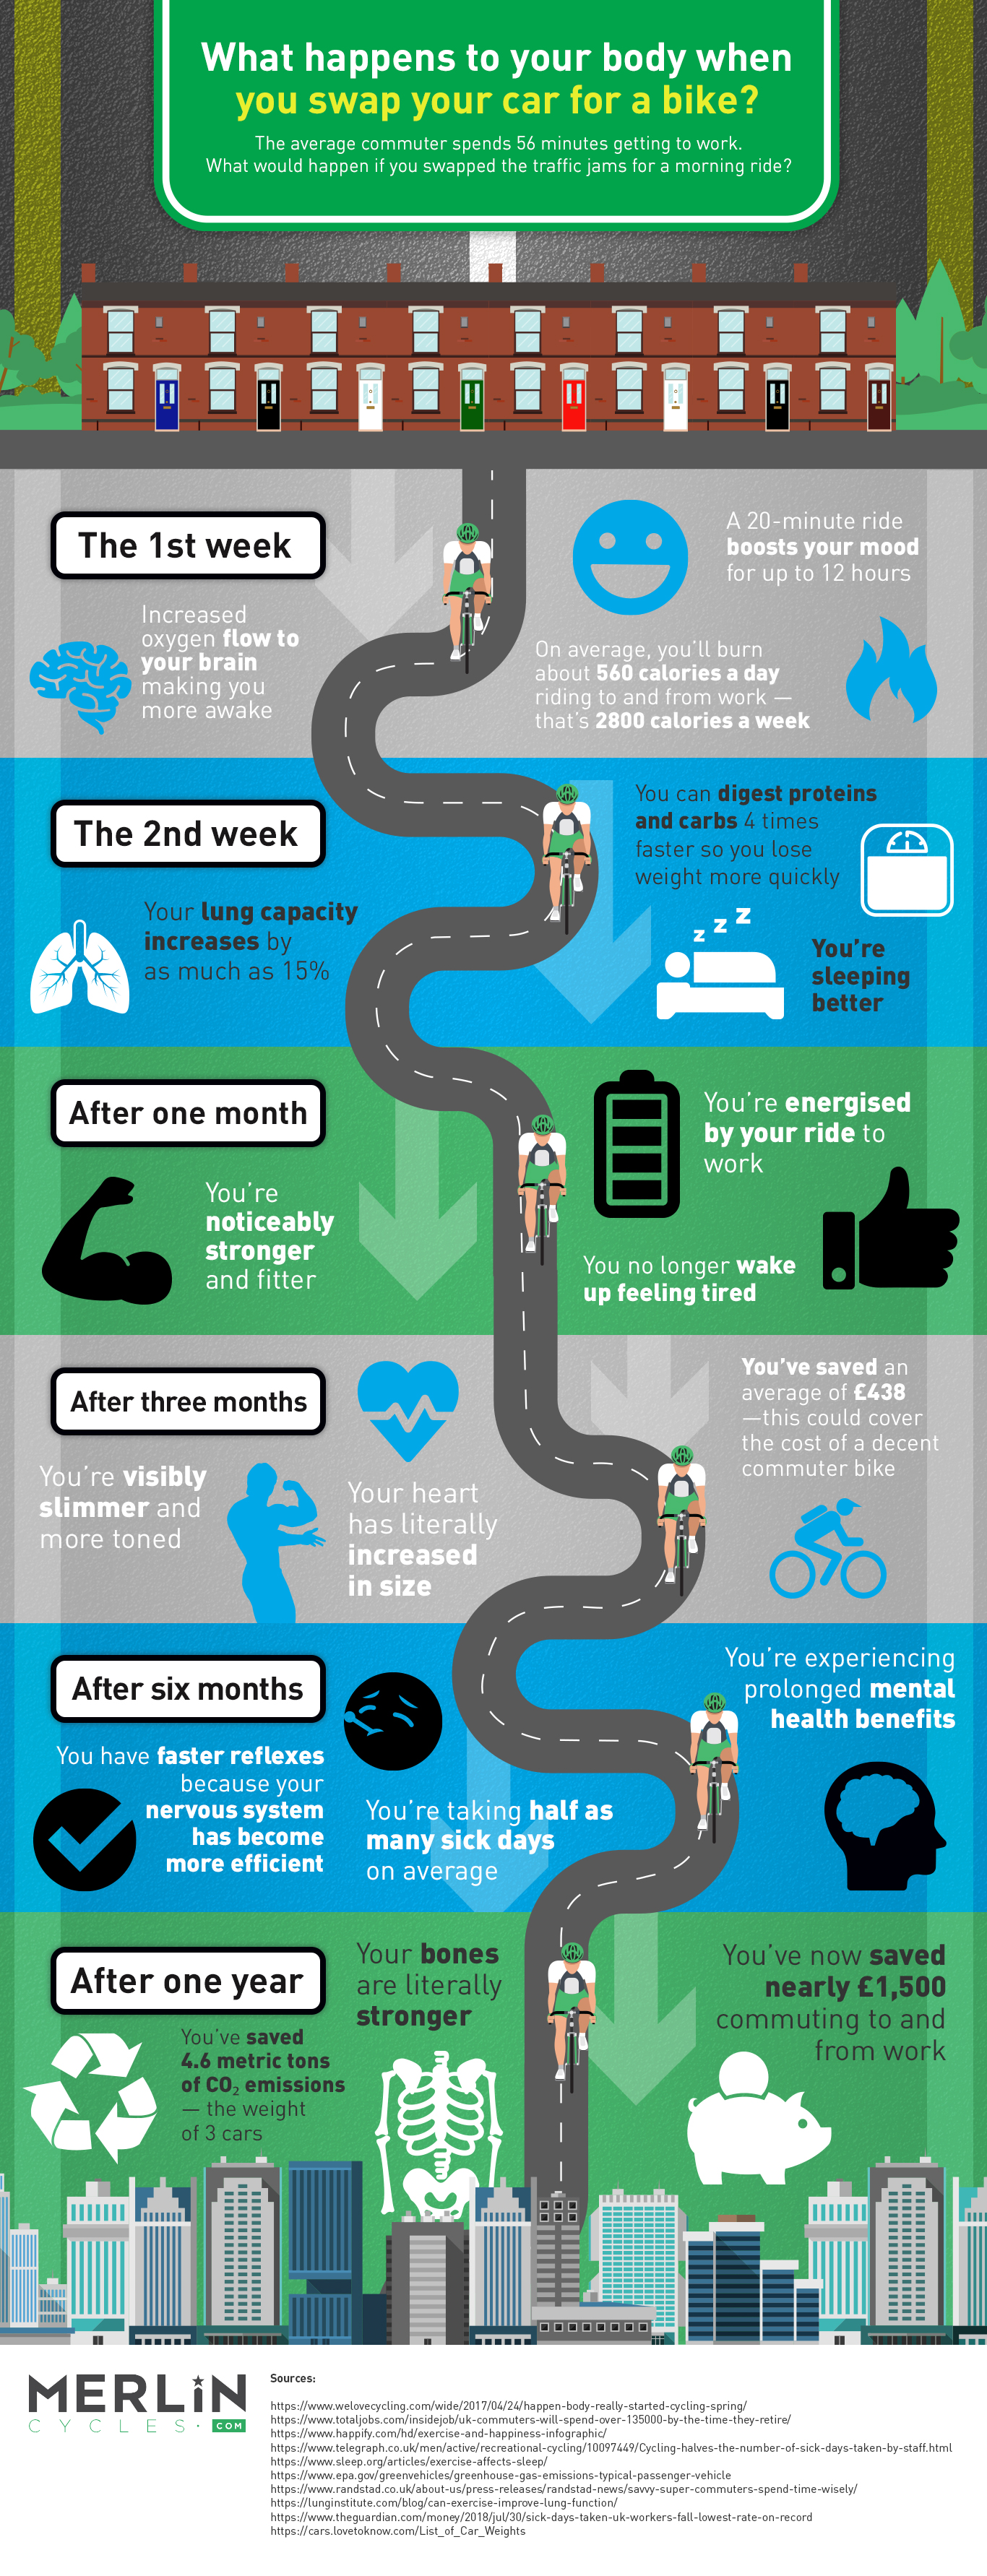 Infographic for Merlin Cycles that shows what happens to your body when you swap your car for a bike